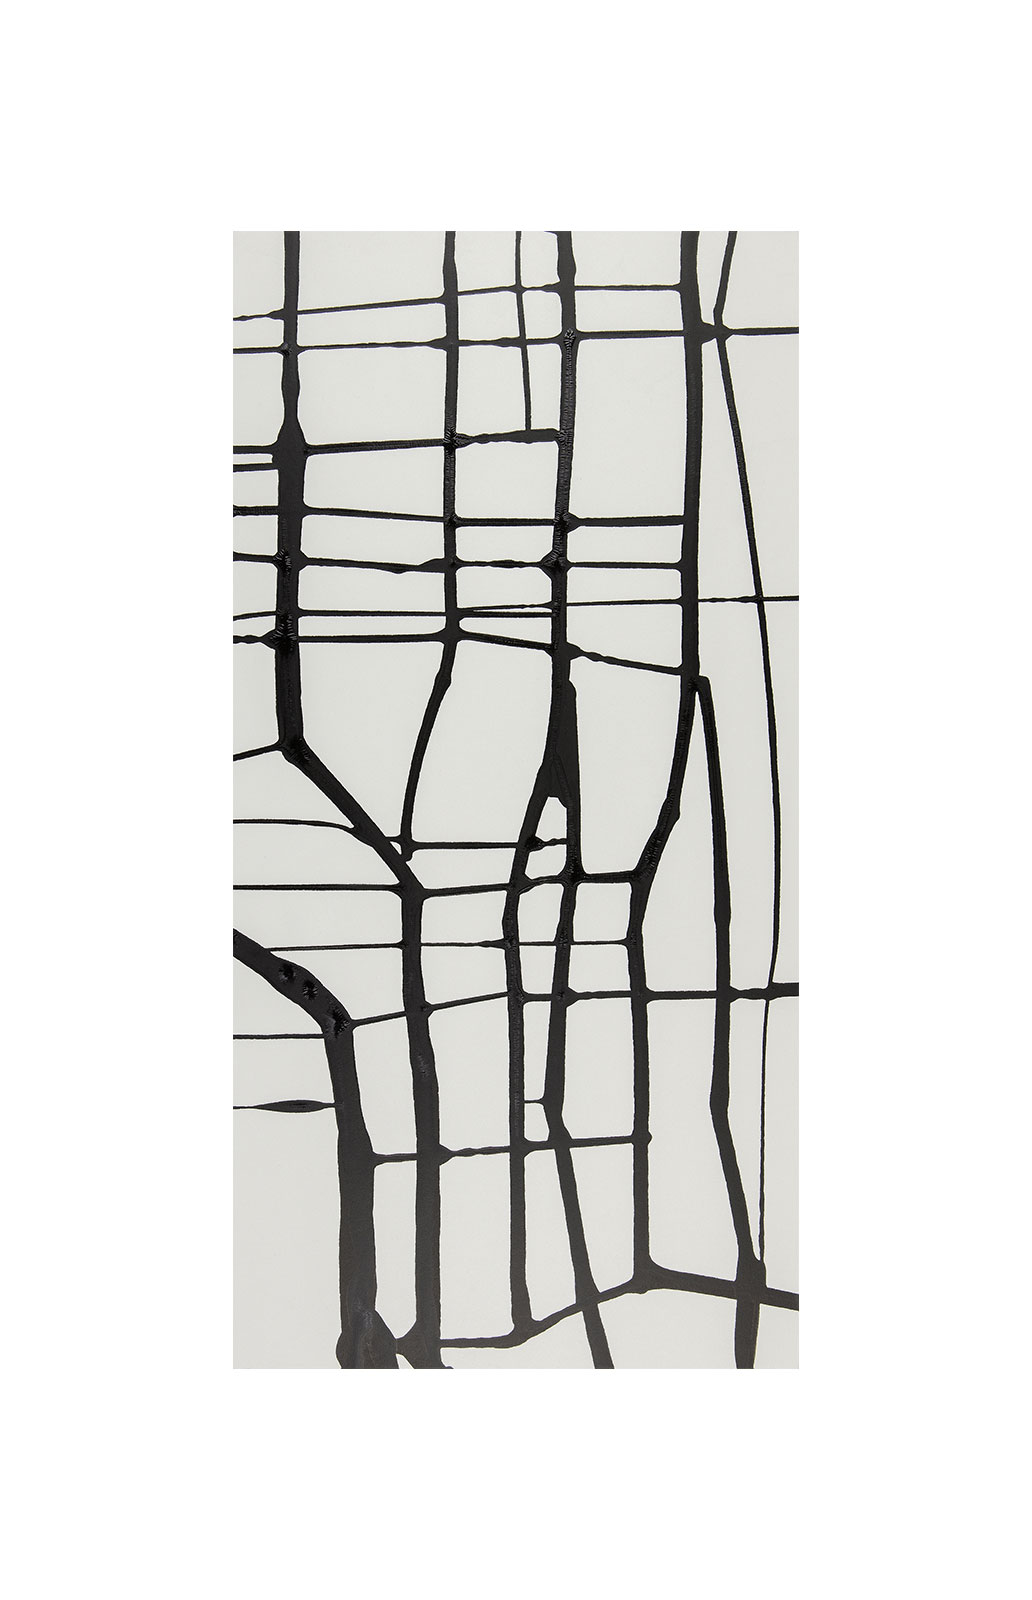 Ink 2.1.1, indian ink on paper, black and white artwork, triptych, jf escande, contemporary art